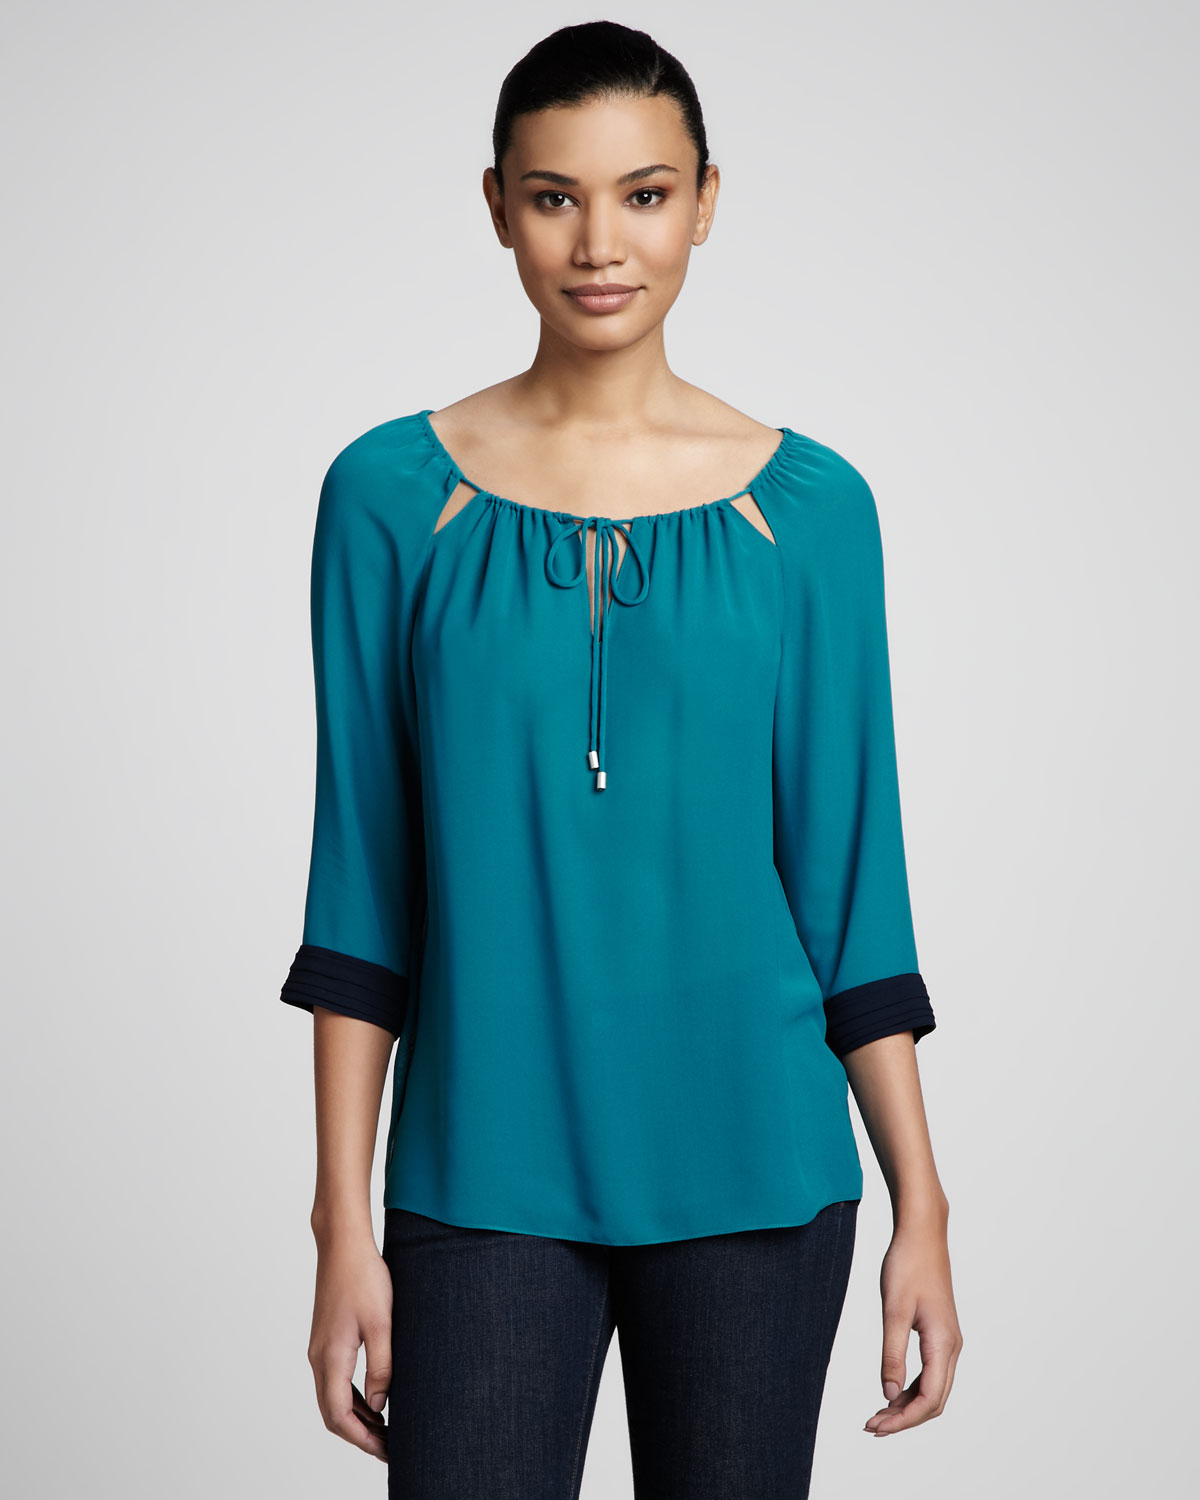 Womens Teal Blouse